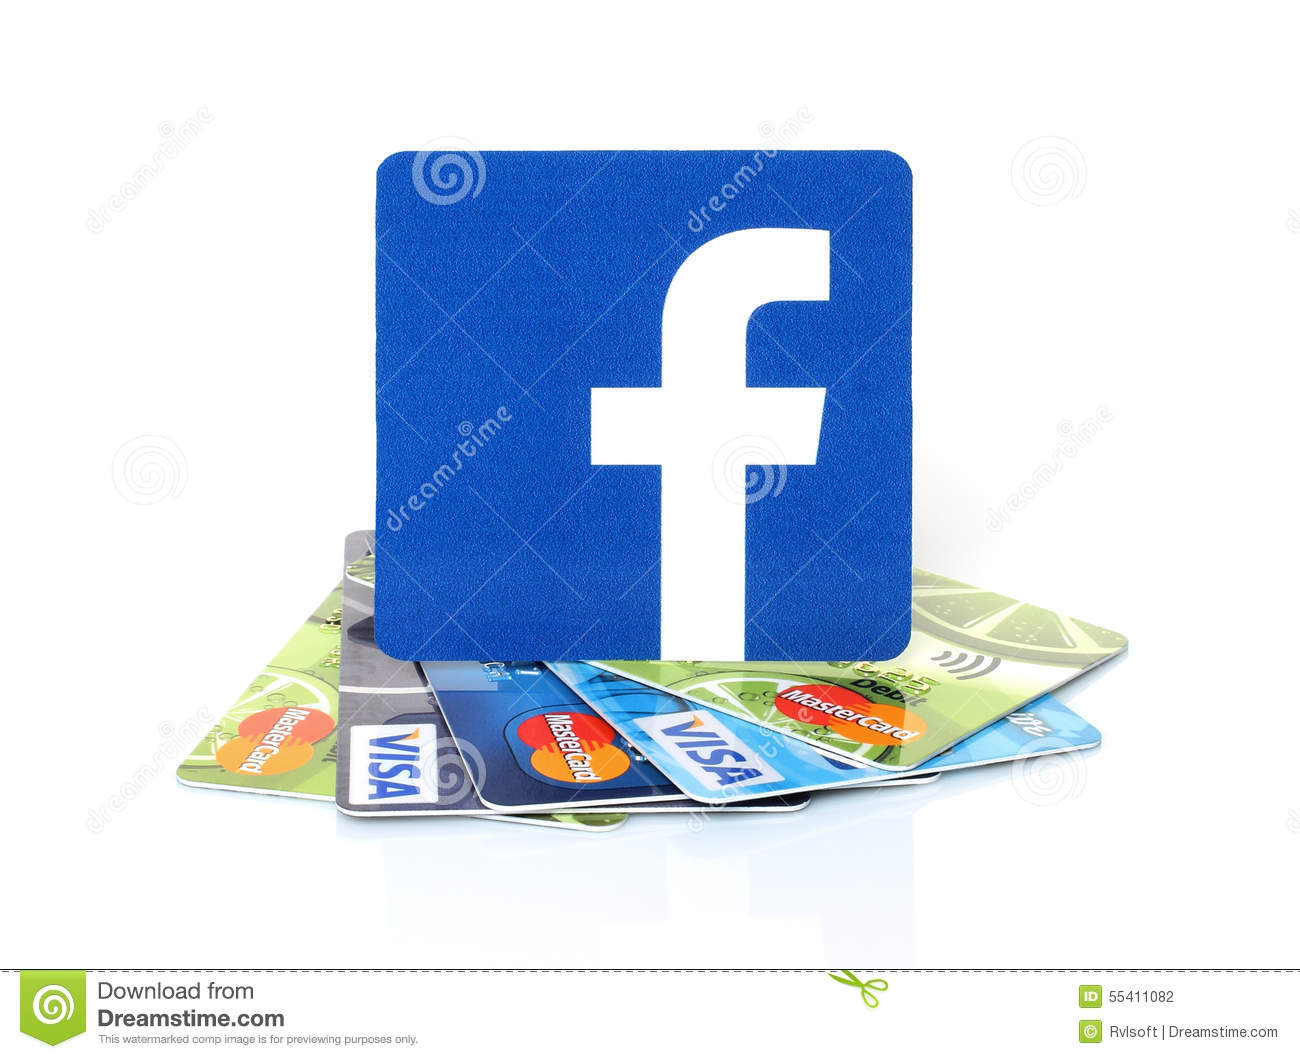 Facebook logo printed on paper and placed on cards visa and facebook logo printed on paper and placed on cards visa and mastercard editorial stock photo biocorpaavc Choice Image